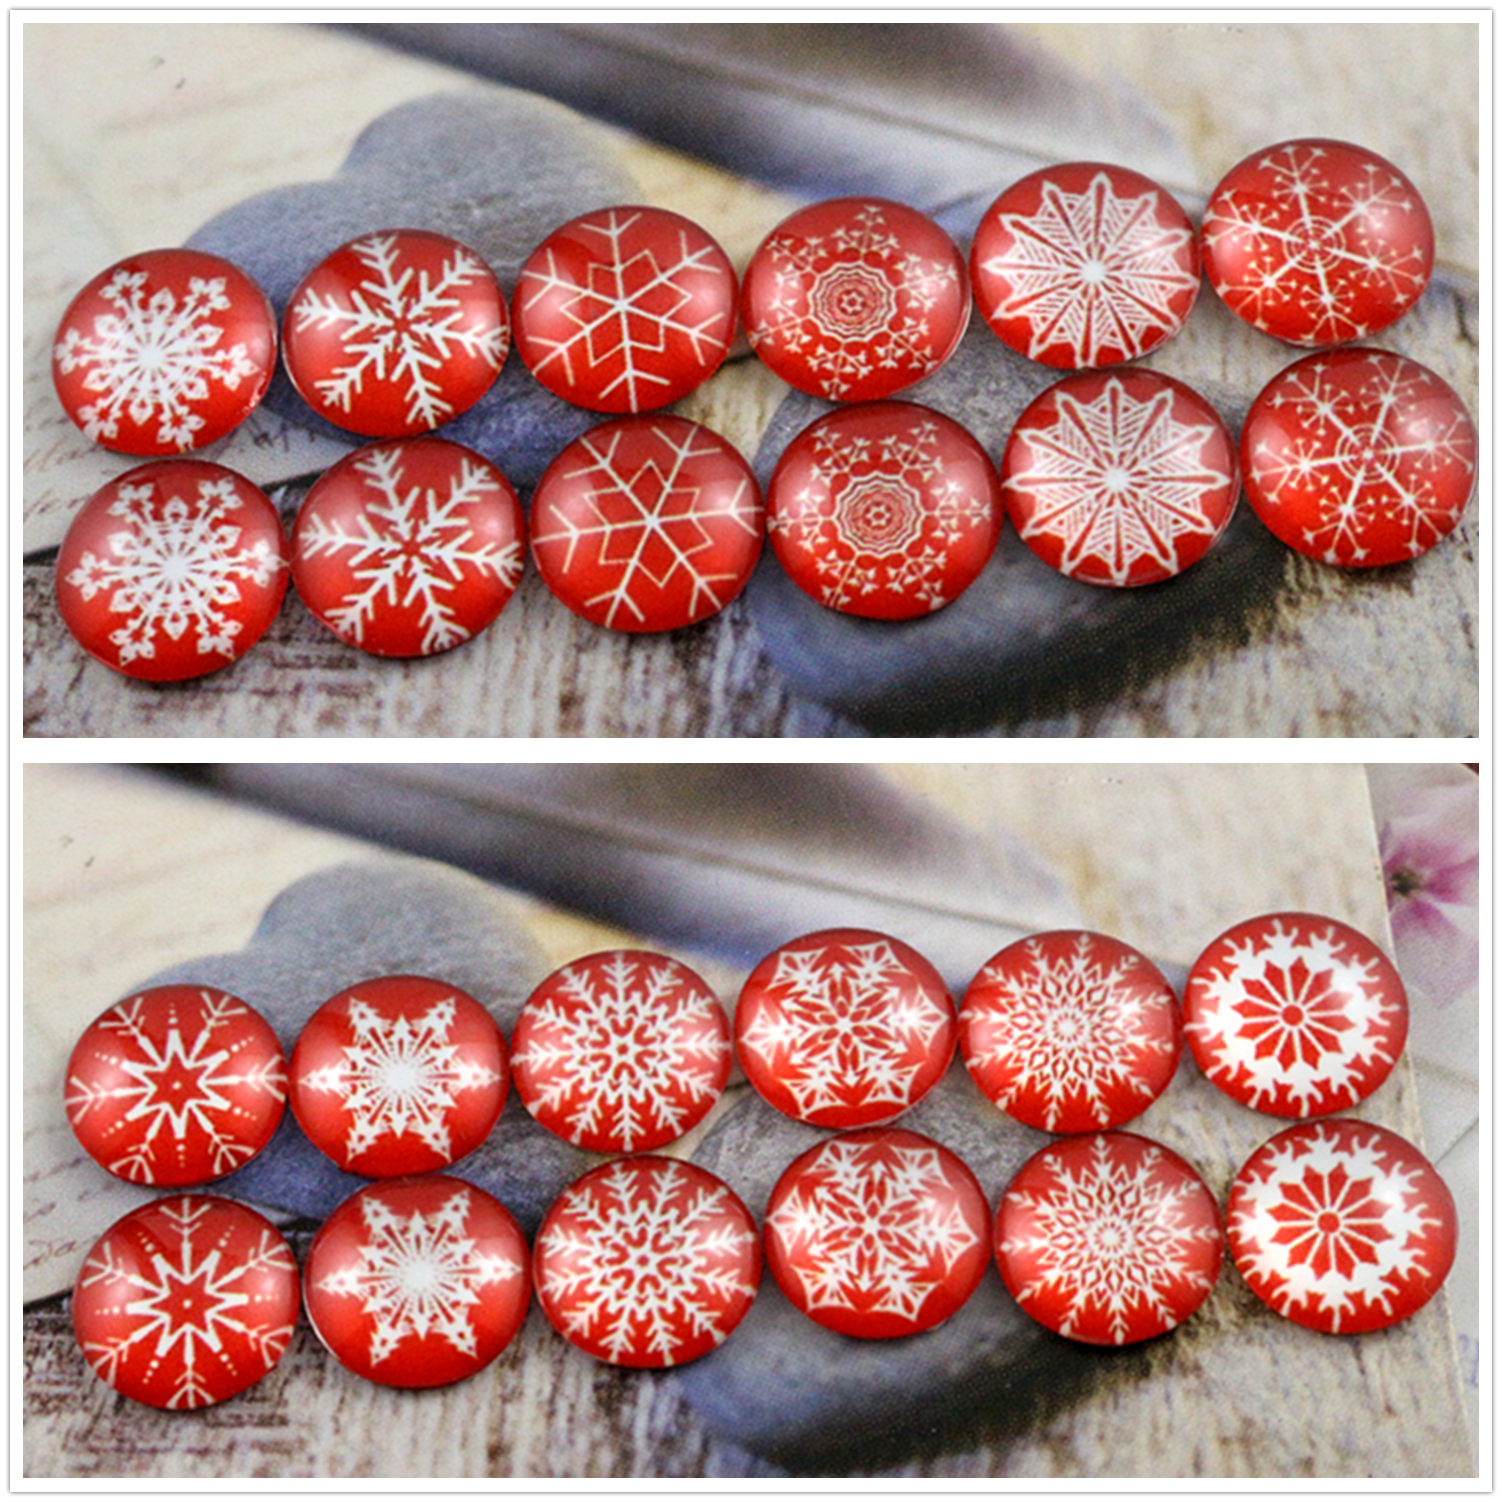 12pcs (One Set) Two Style 12mm Red Background Snowflakes Handmade Glass Cabochons Pattern Domed Jewelry Accessories Supplies